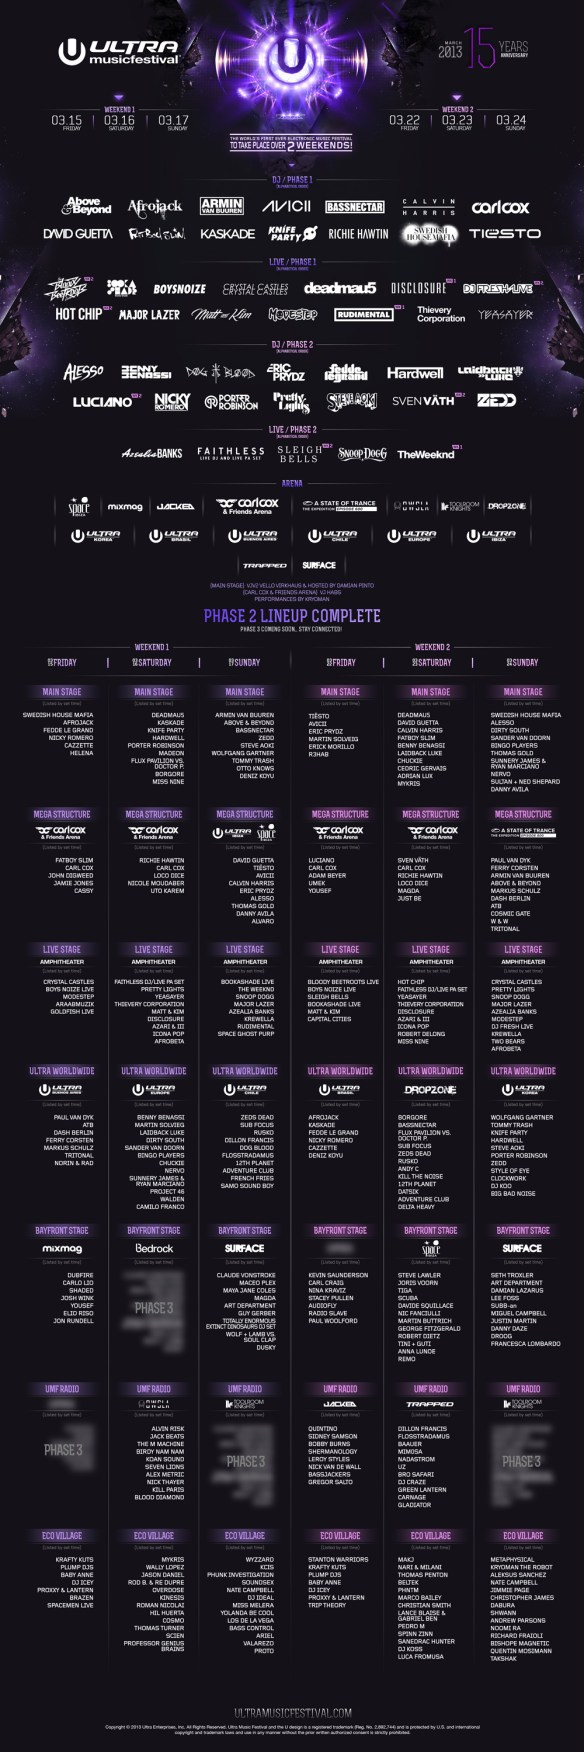 complete lineup and stage schedule for Ultra 2013 in miami